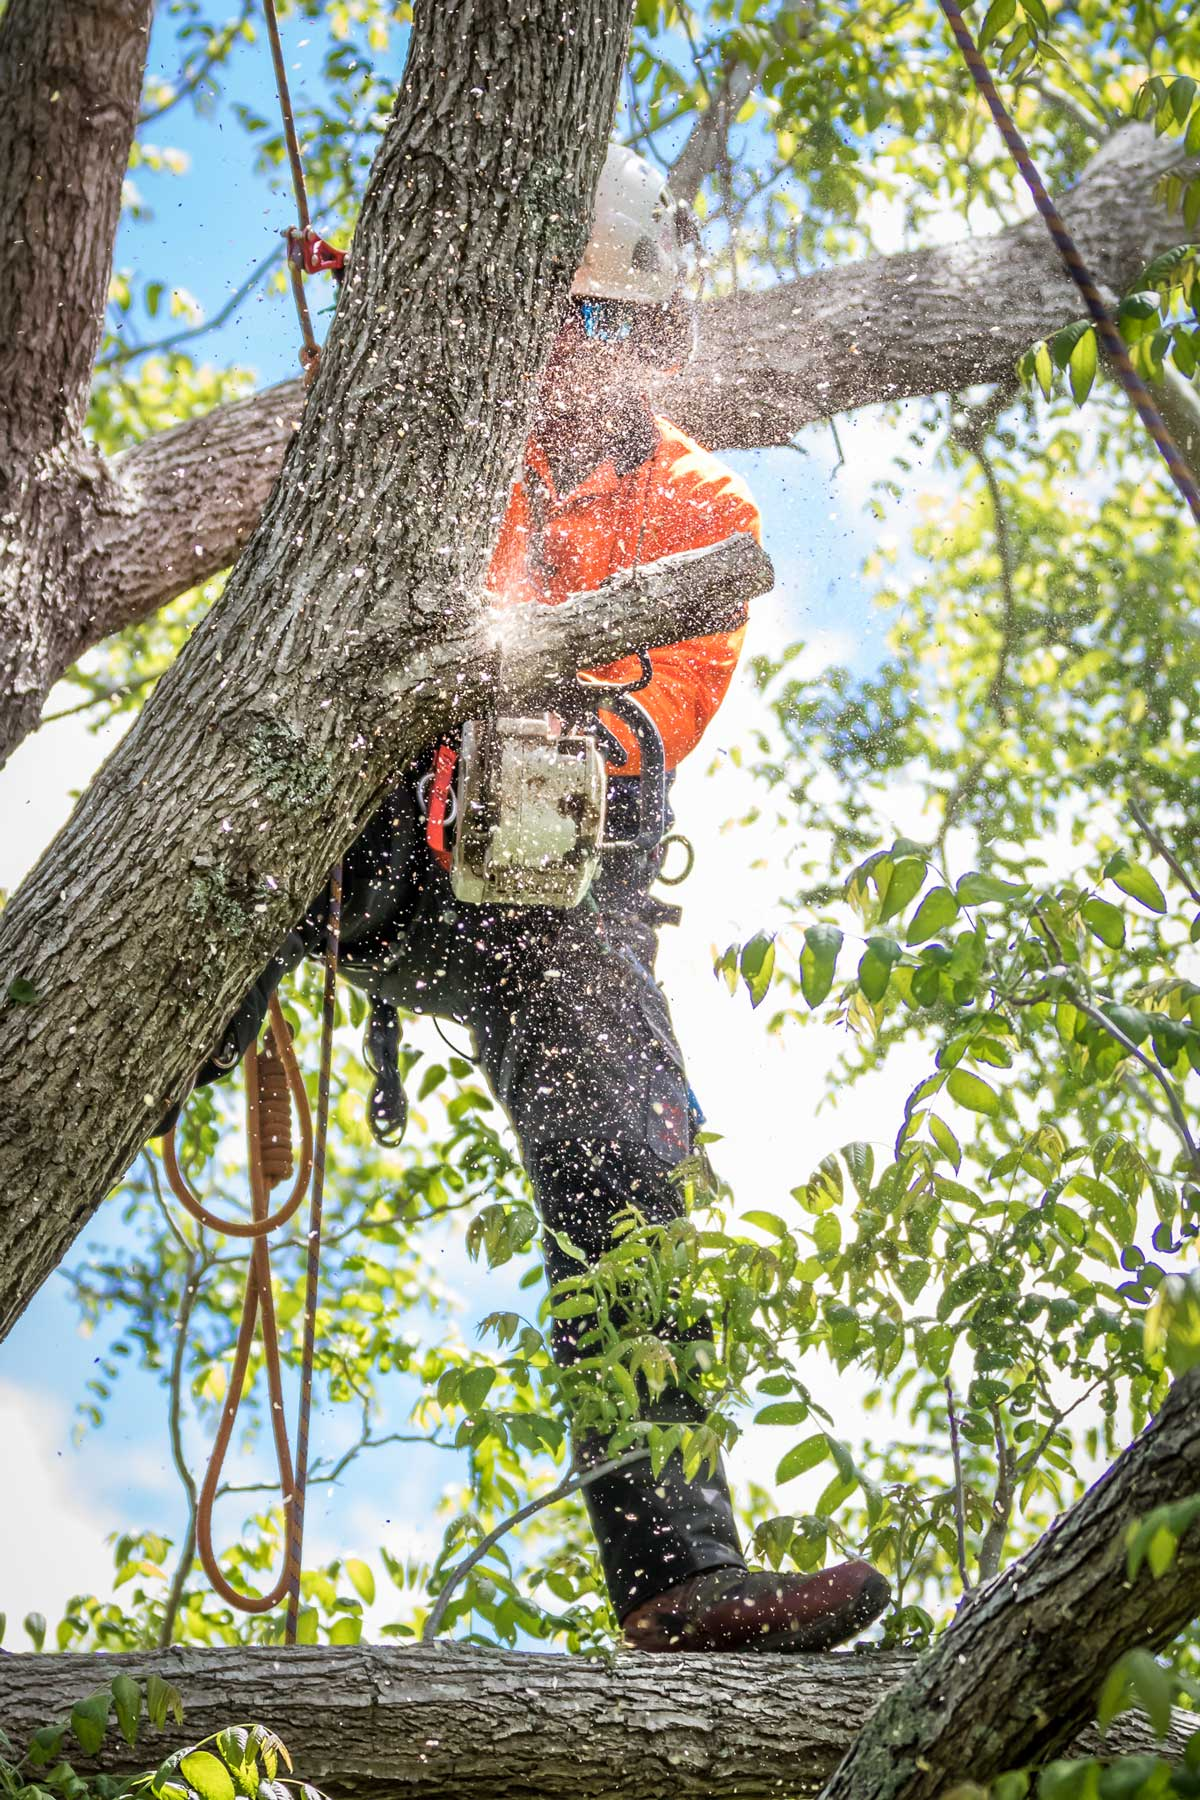 Pruning over the House: Less Can Be More